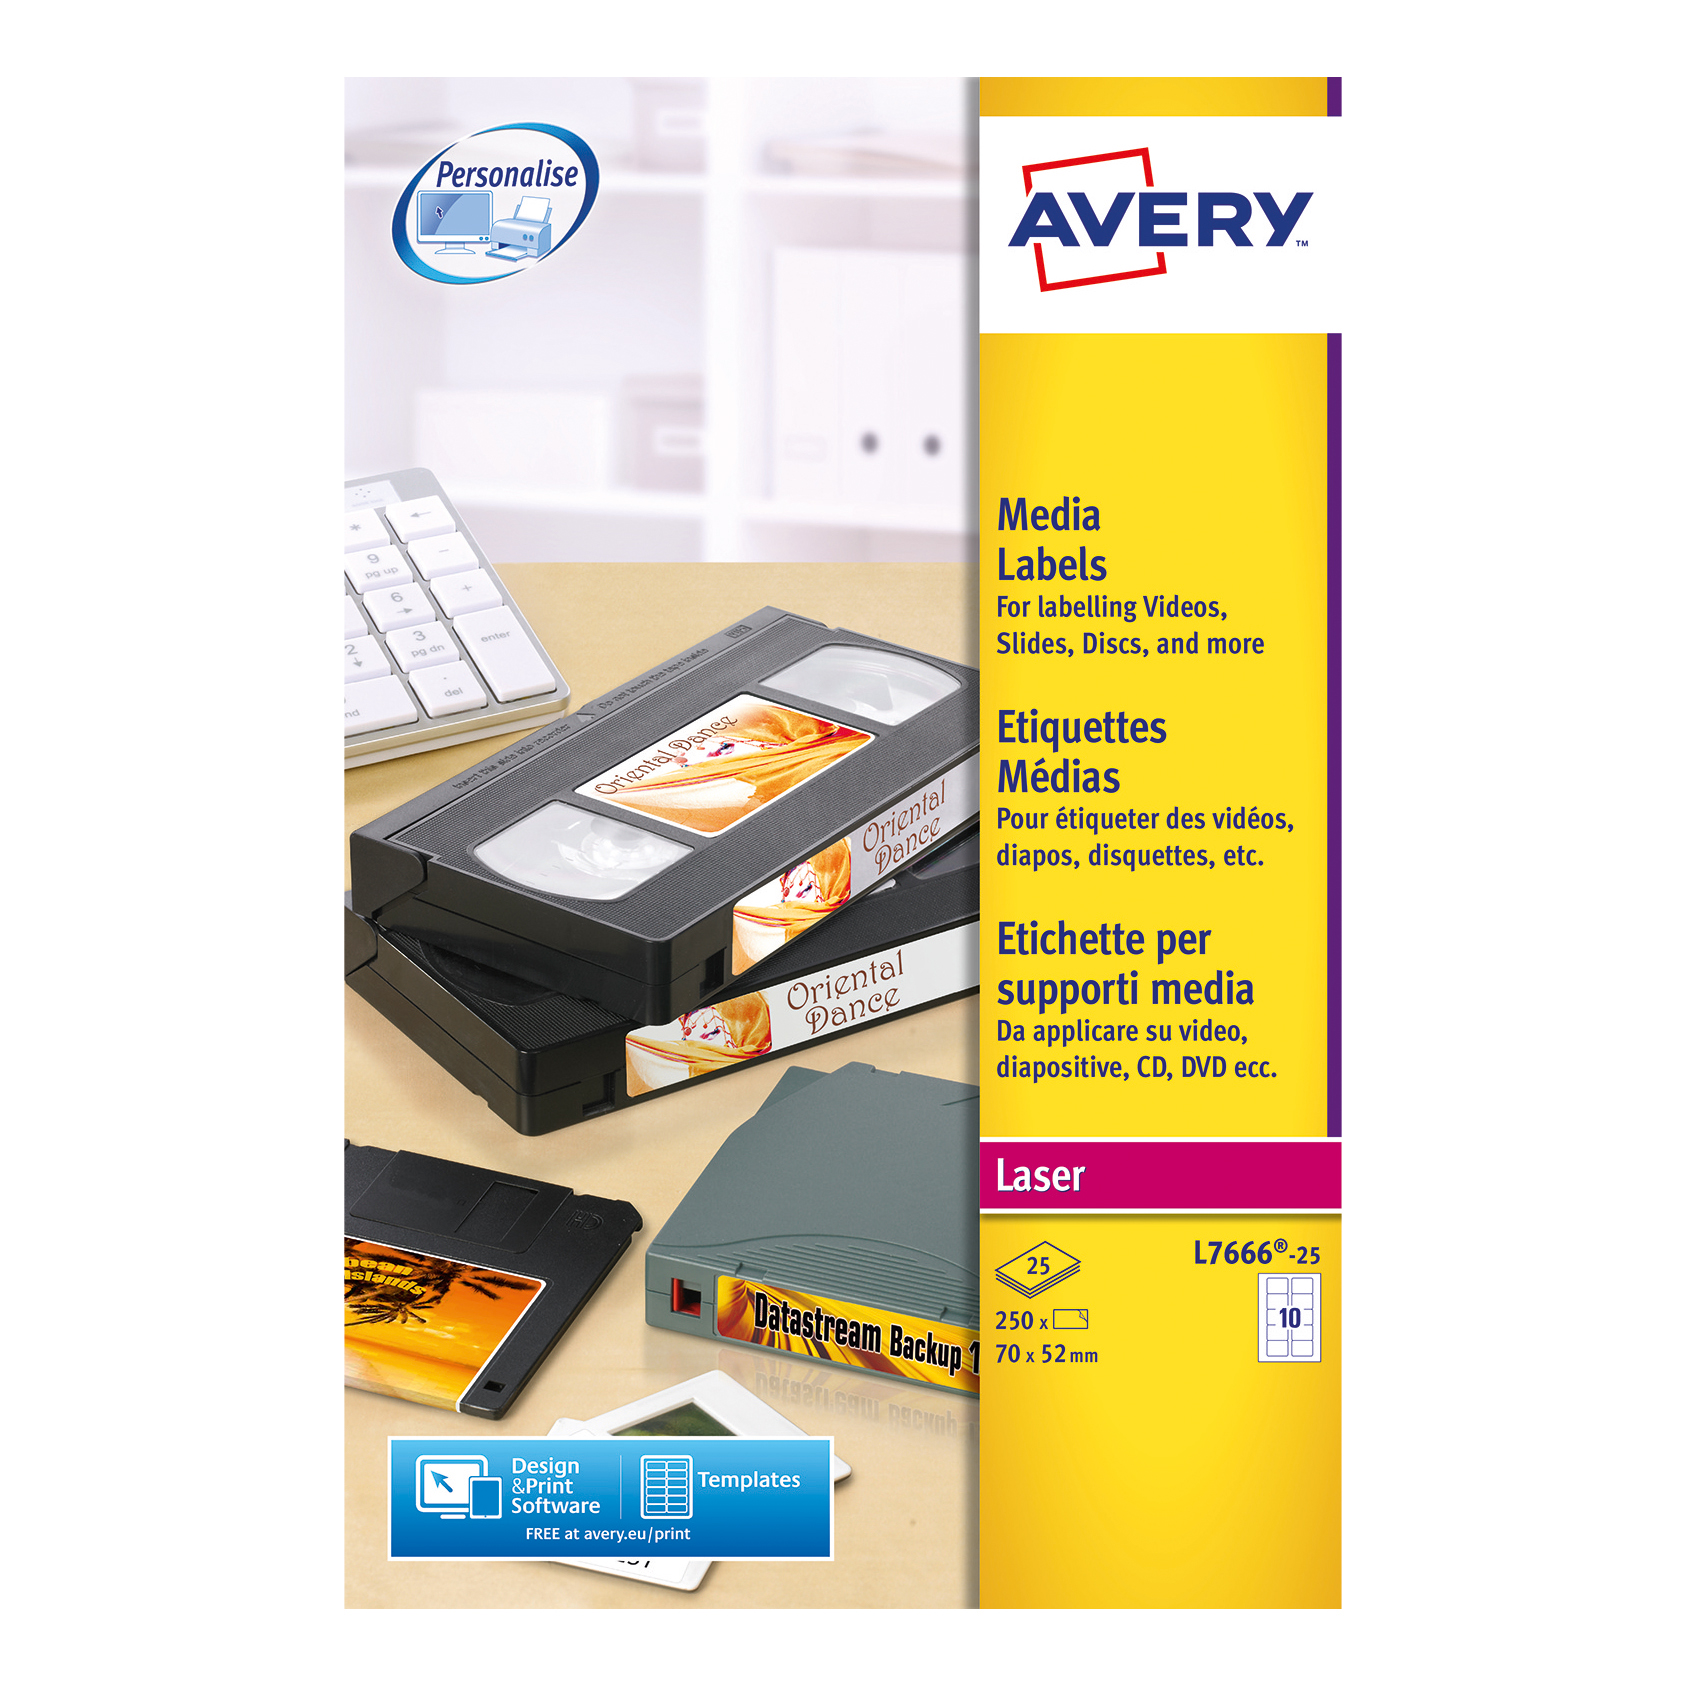 Avery Diskette Labels Laser 3.5 inch Disk 10 per Sheet 70x52mm White Ref L7666-25 [250 Labels]